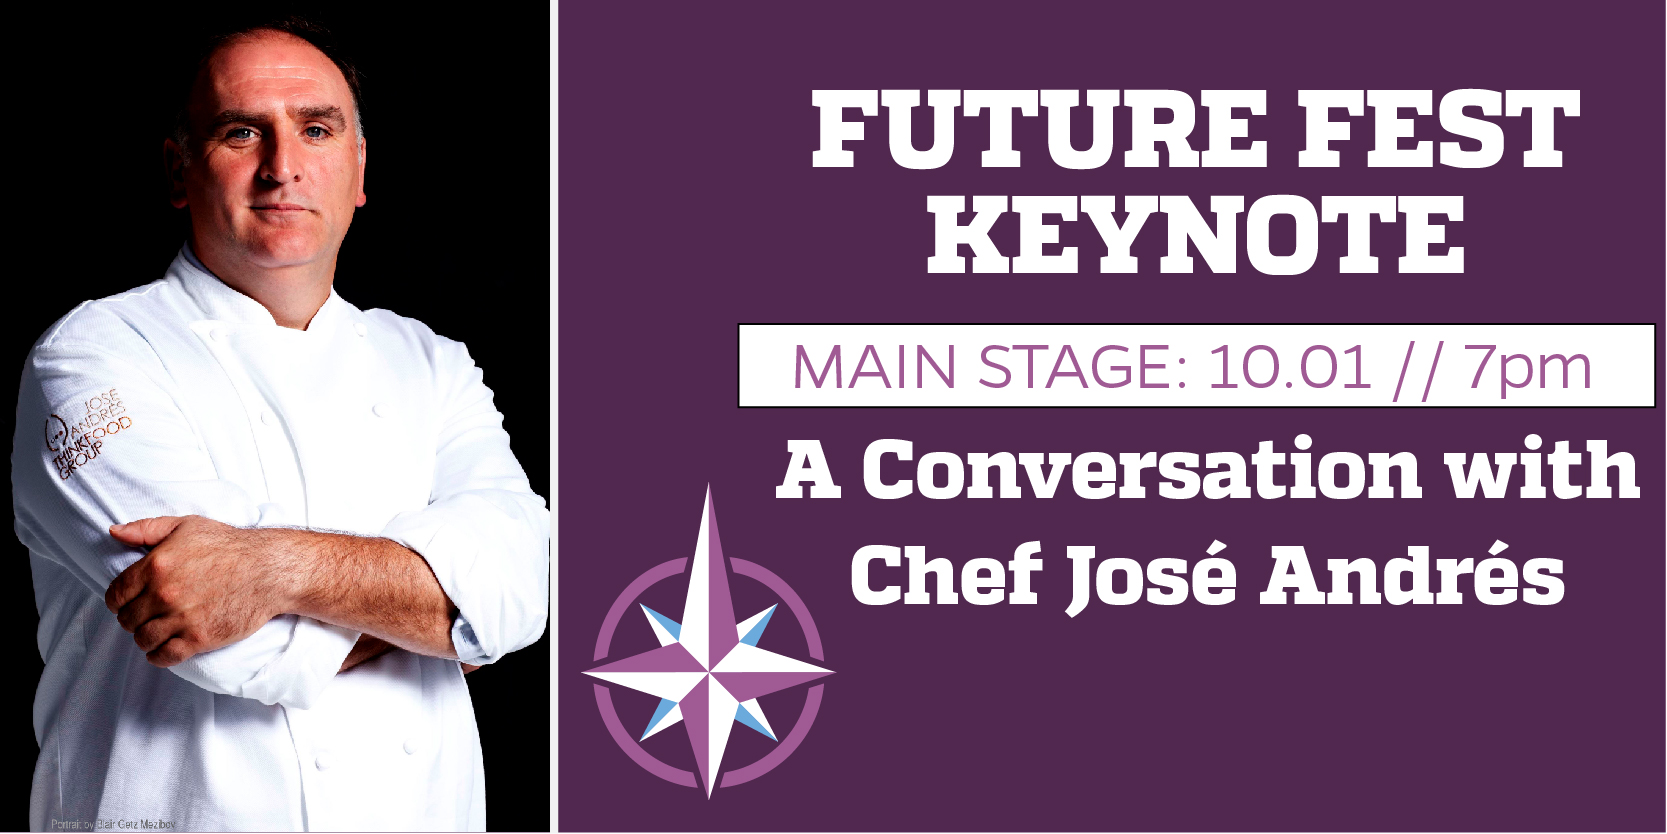 A CONVERSATION WITH CHEF JOSÉ ANDRÉS